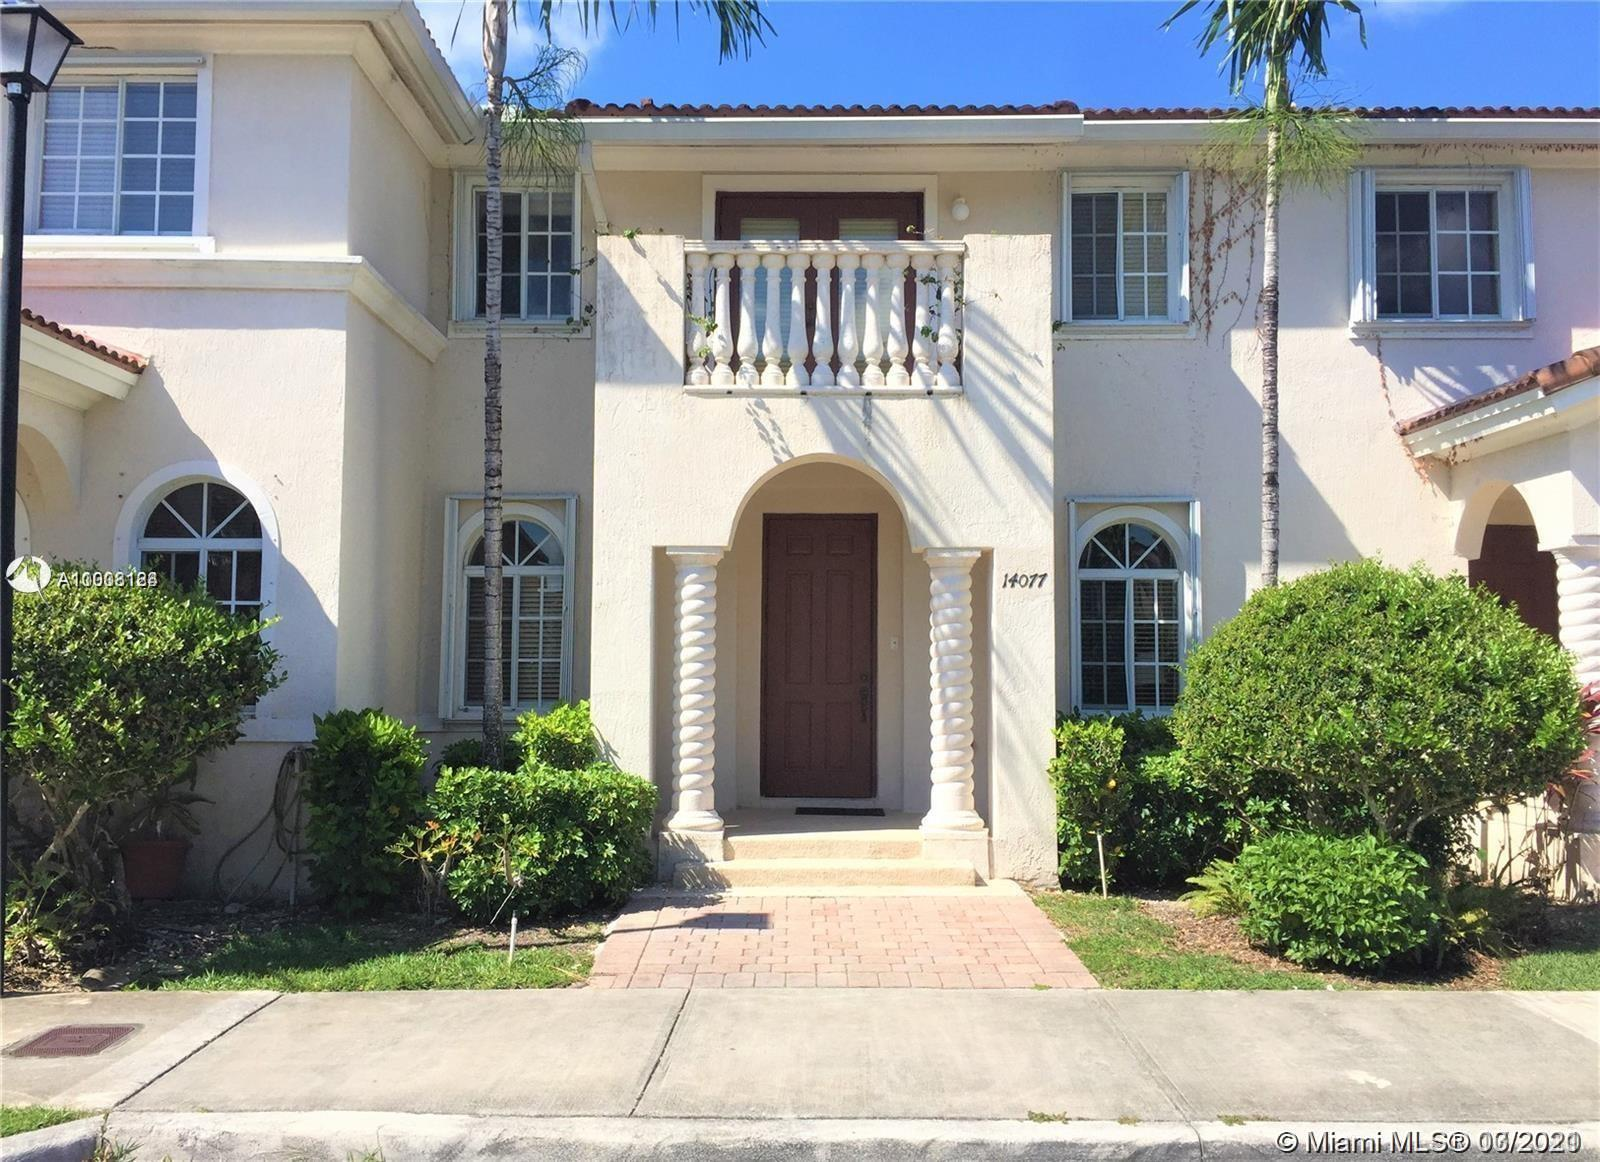 SW 273rd Ter #14077 Property Photo - Homestead, FL real estate listing